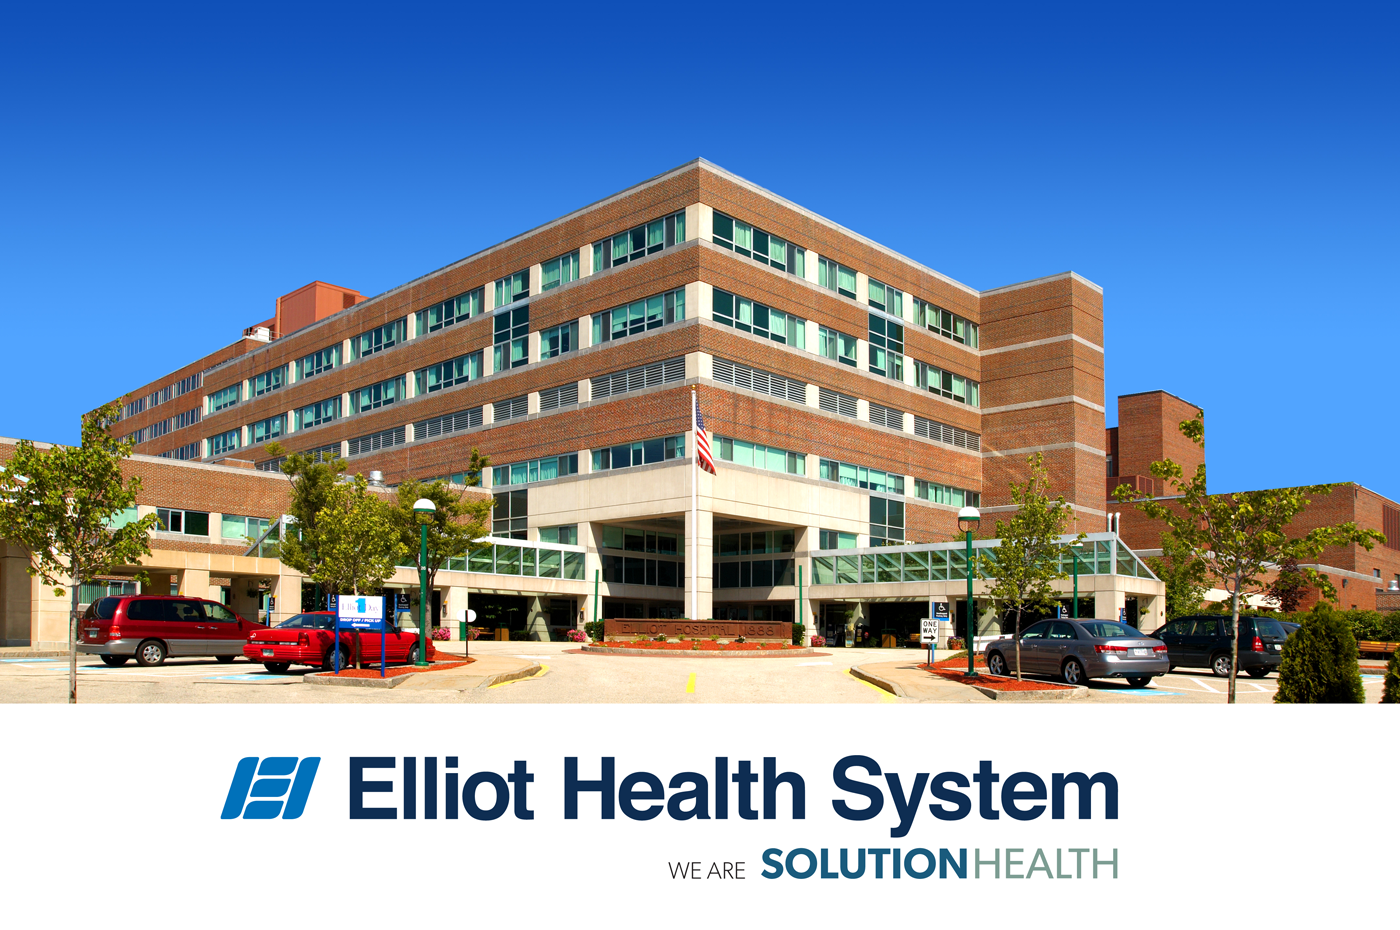 Elliot Health System and Elliot Hospital in Southern NH